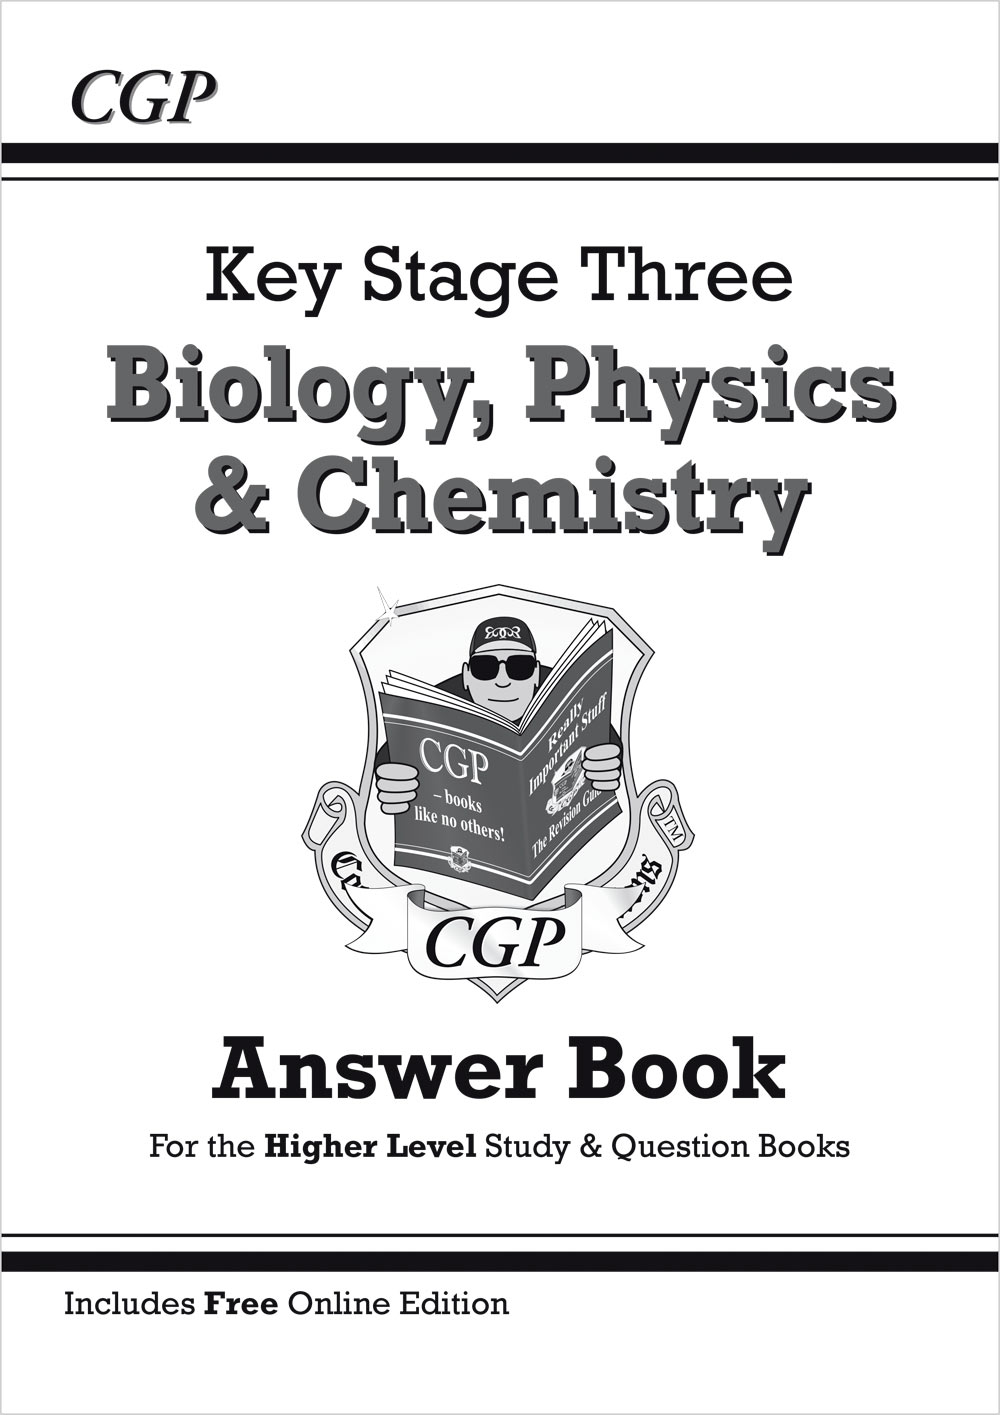 SHQA32 - KS3 Science Answers for Study & Question Books (Bio/Chem/Phys) - Higher